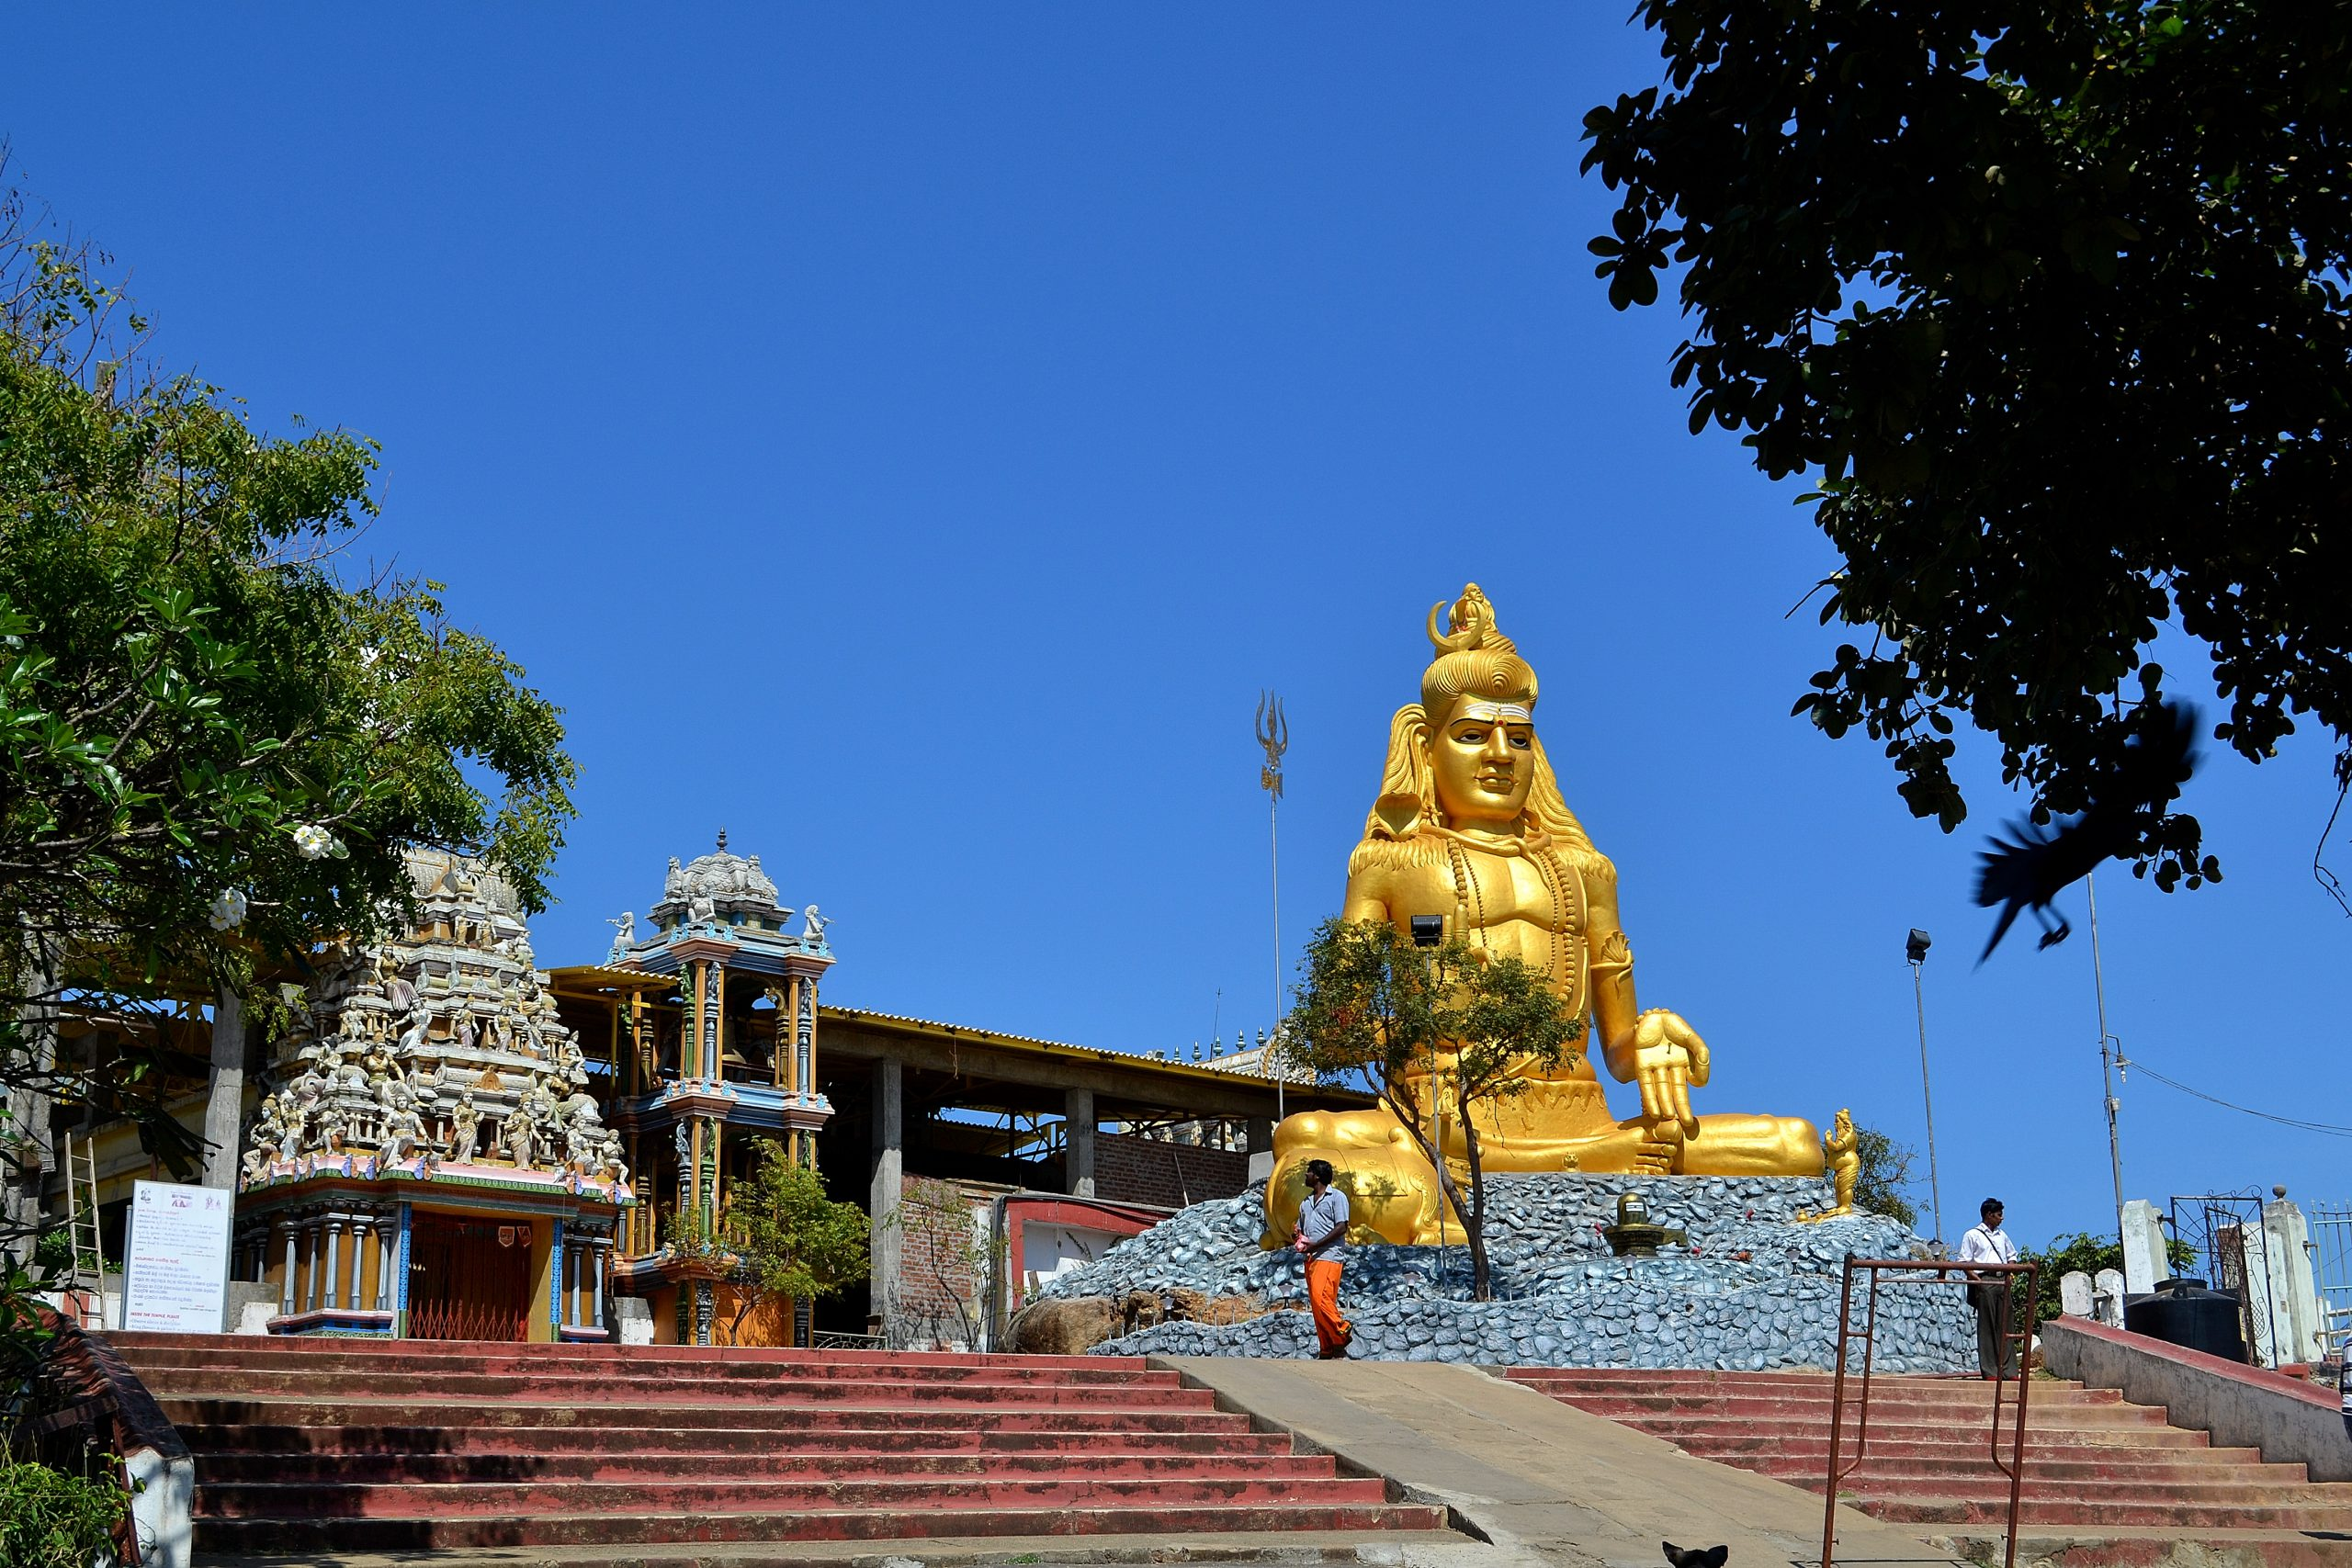 Thiru Koneswaram Temple at Trincomalee - Must-visit Place During Ramayana Tour in Sri Lanka